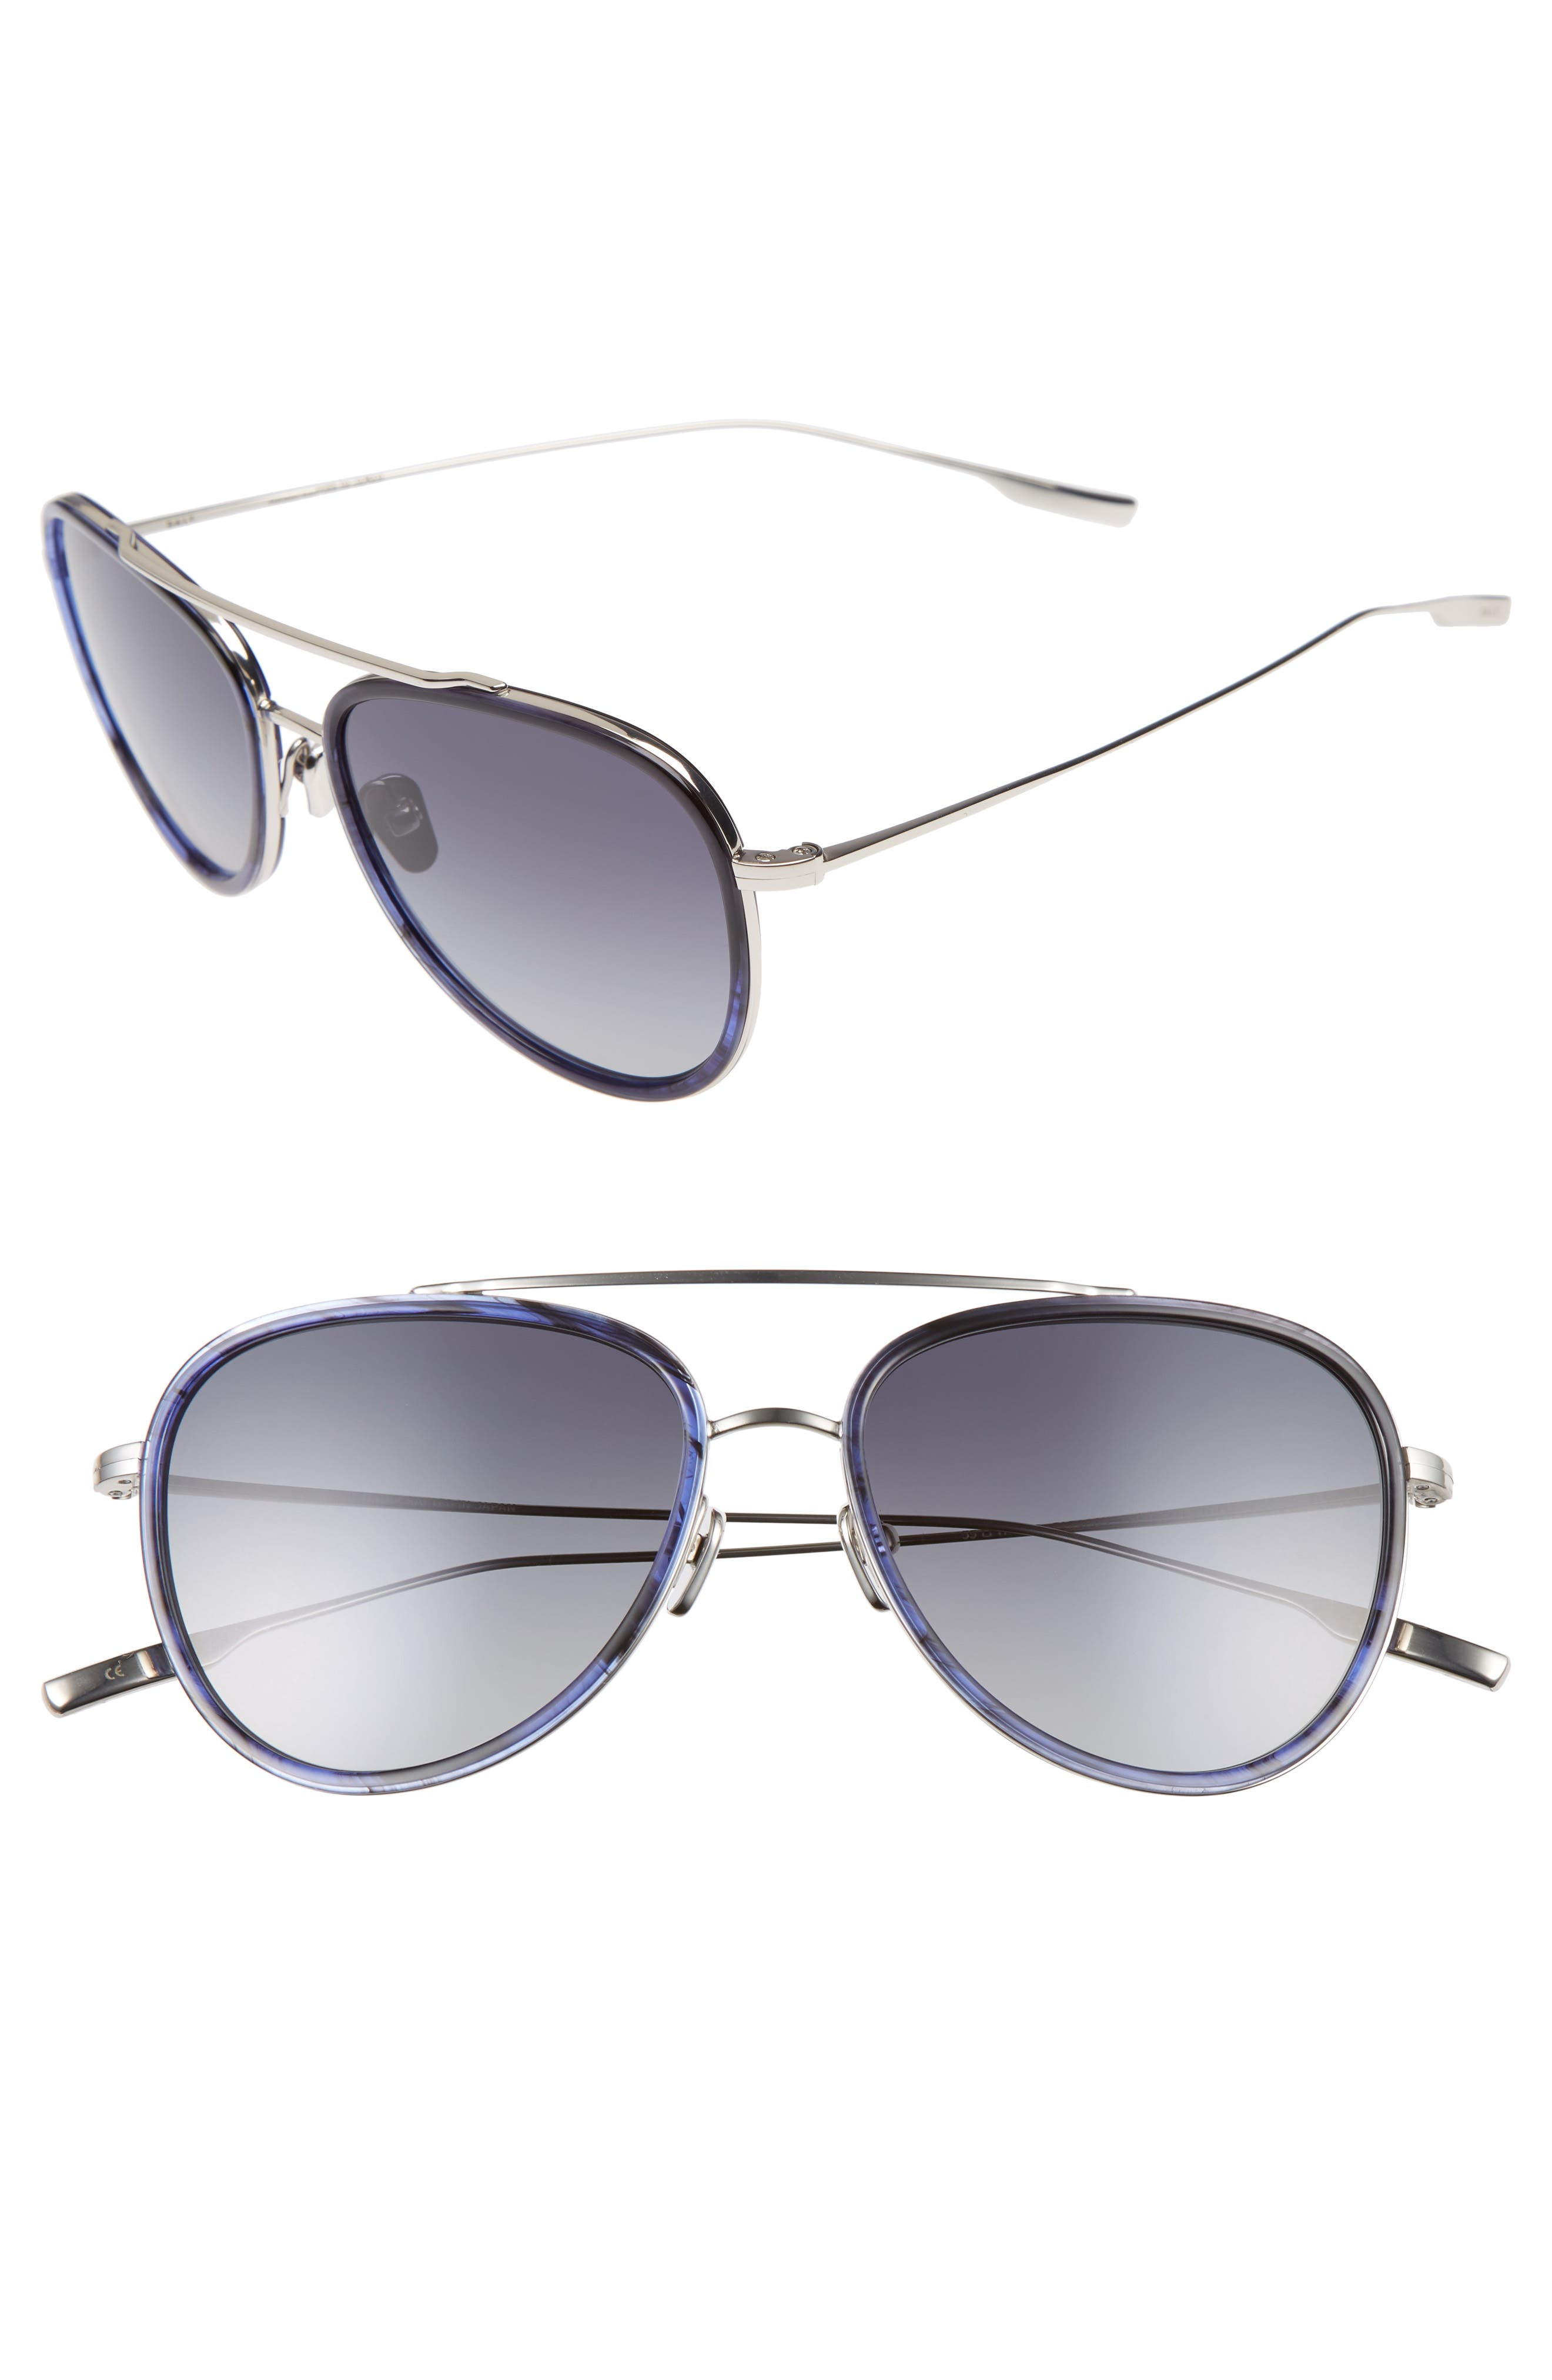 SALT Paragon 55mm Polarized Aviator Sunglasses